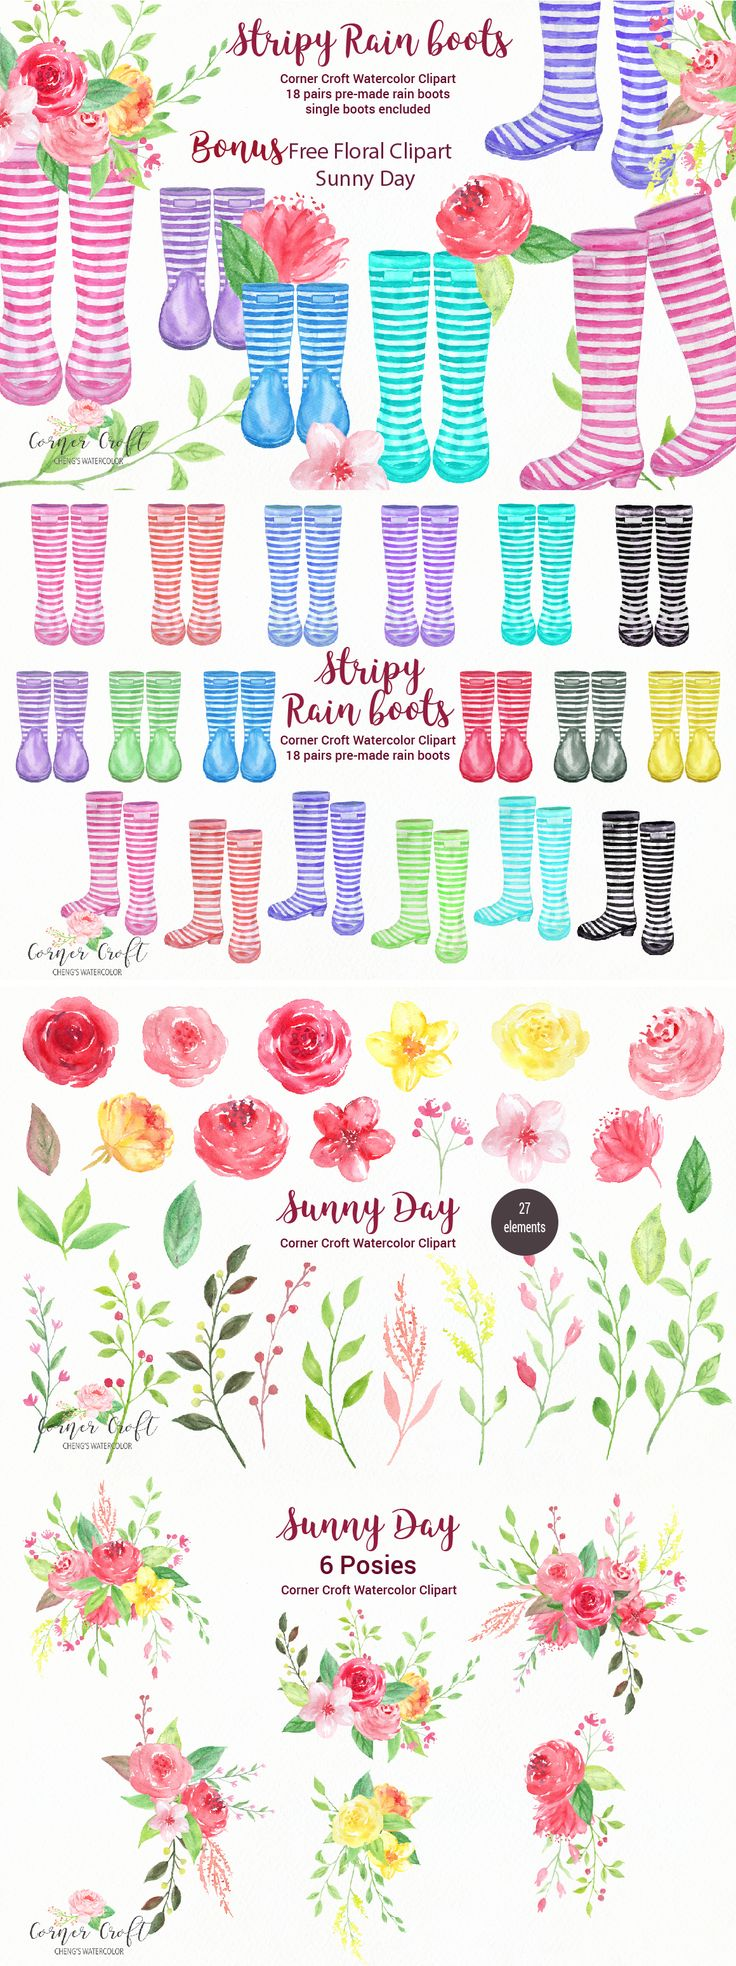 Watercolor Stripy Rain Boots, Watercolor Stripe Wellies, Plus Free Floral Clipart Sunny Day